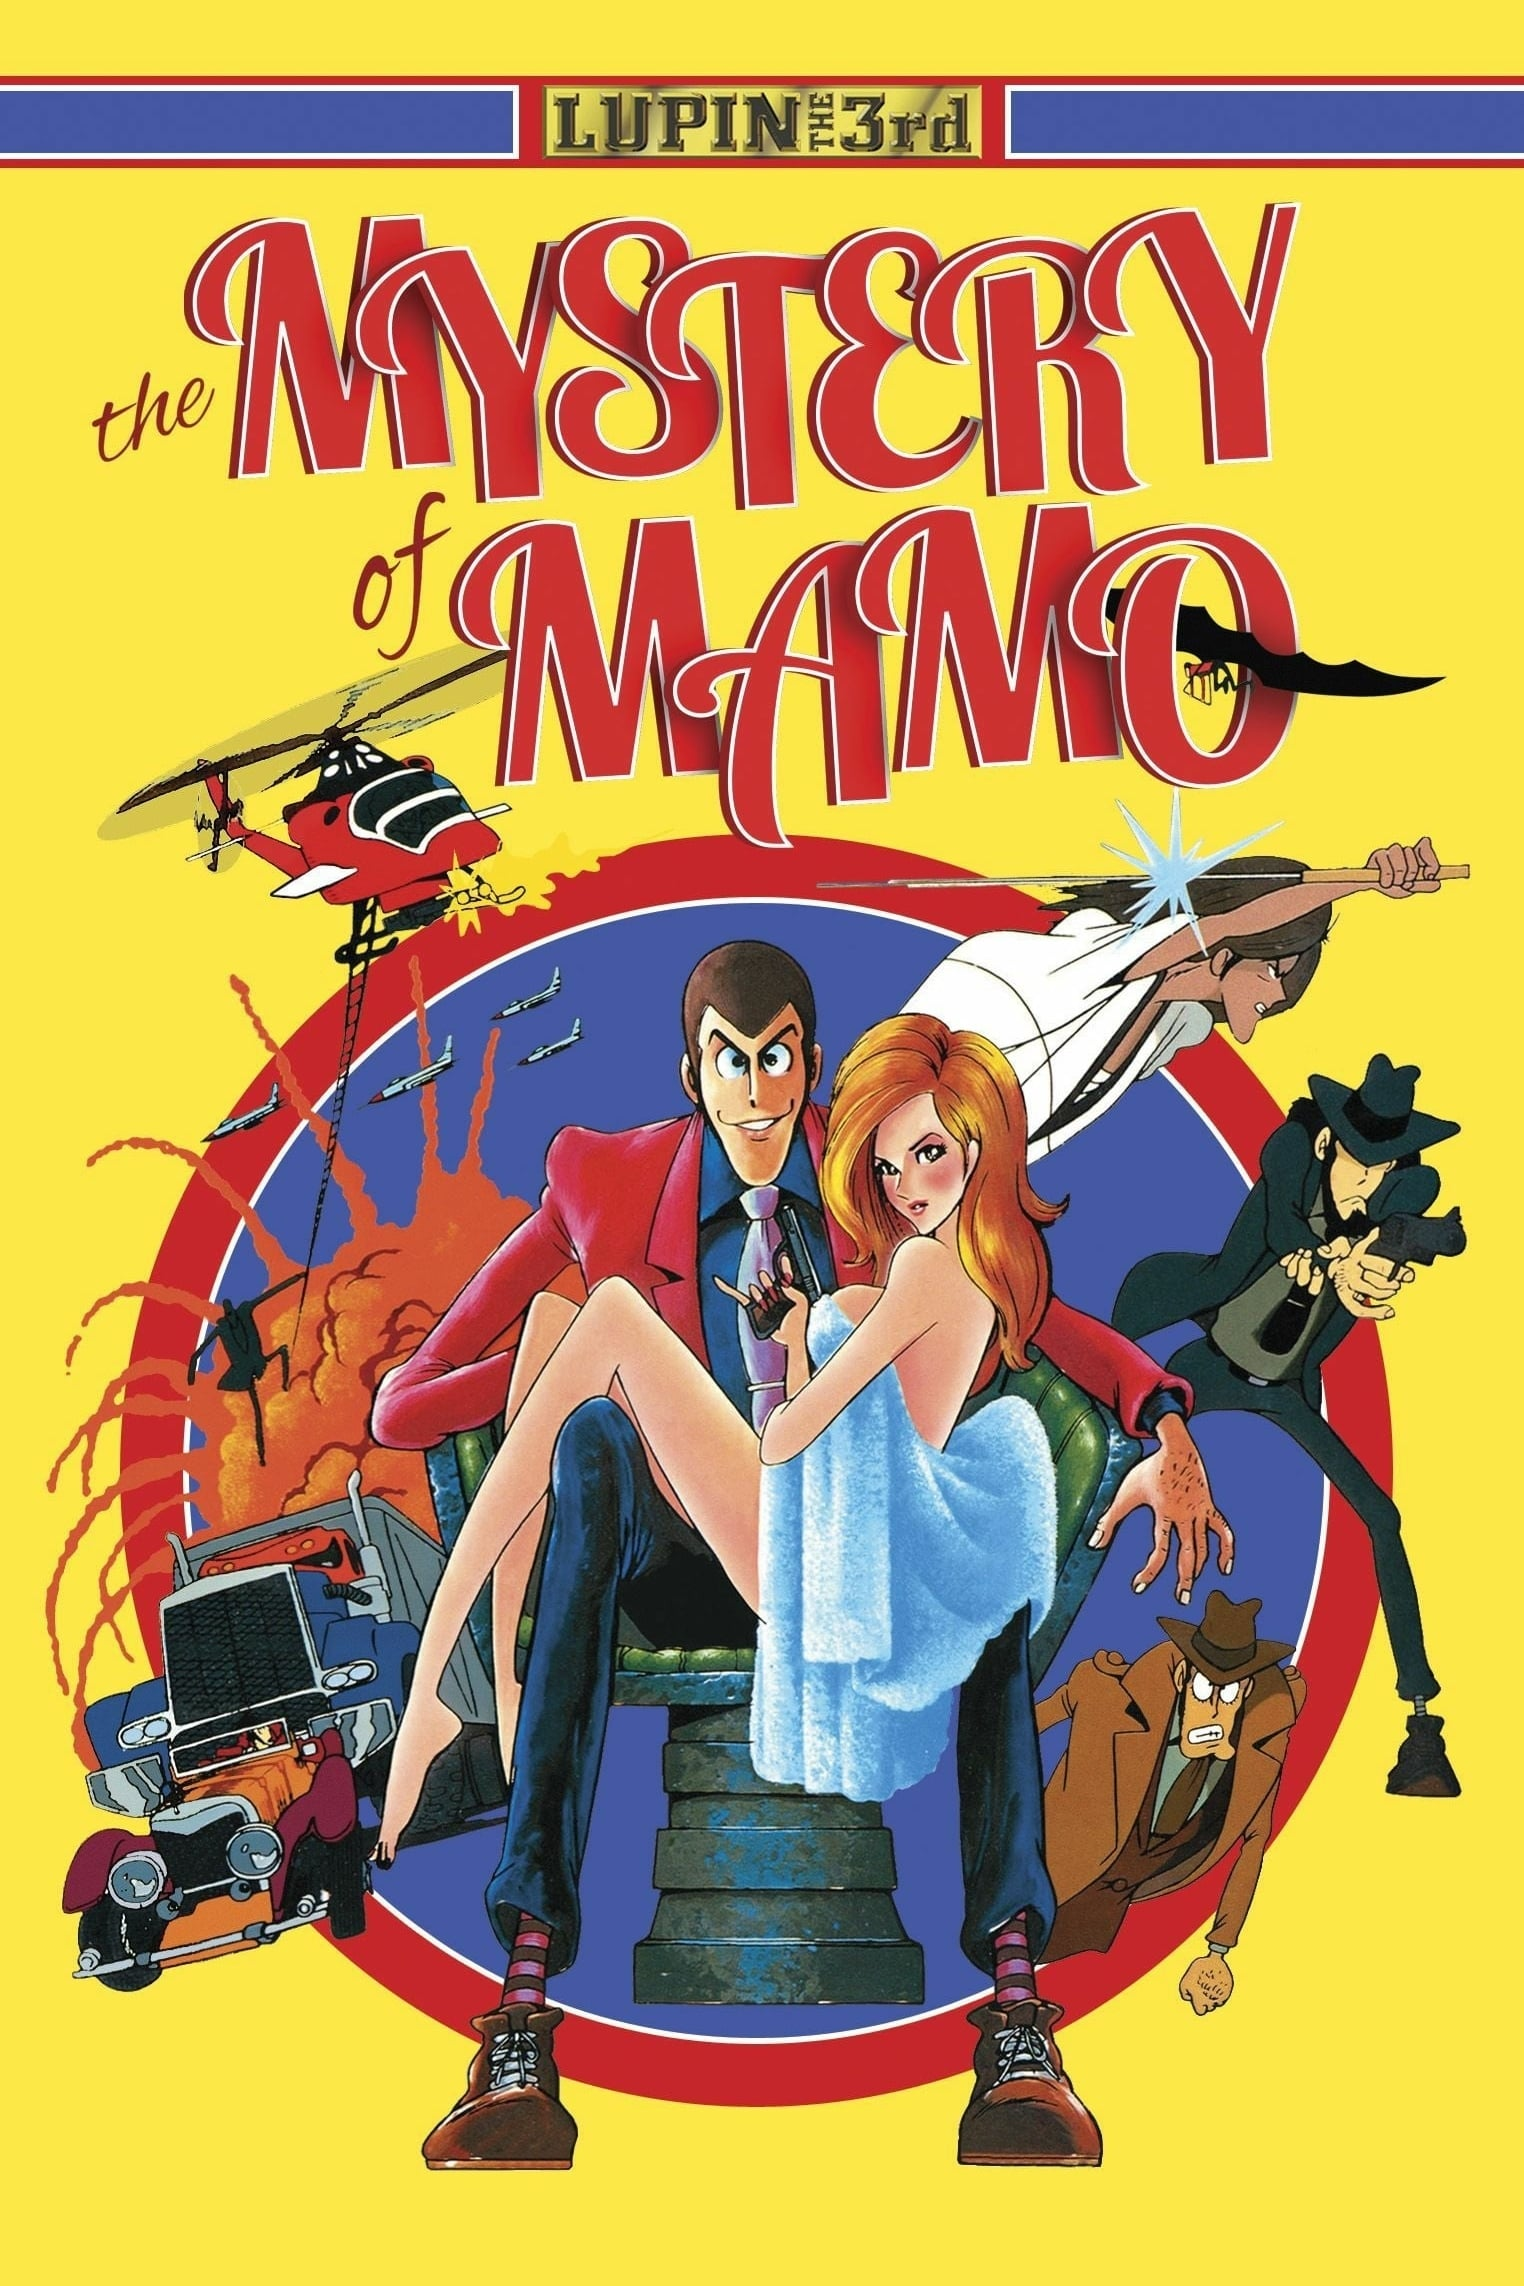 Lupin the Third: The Mystery of Mamo (1978)